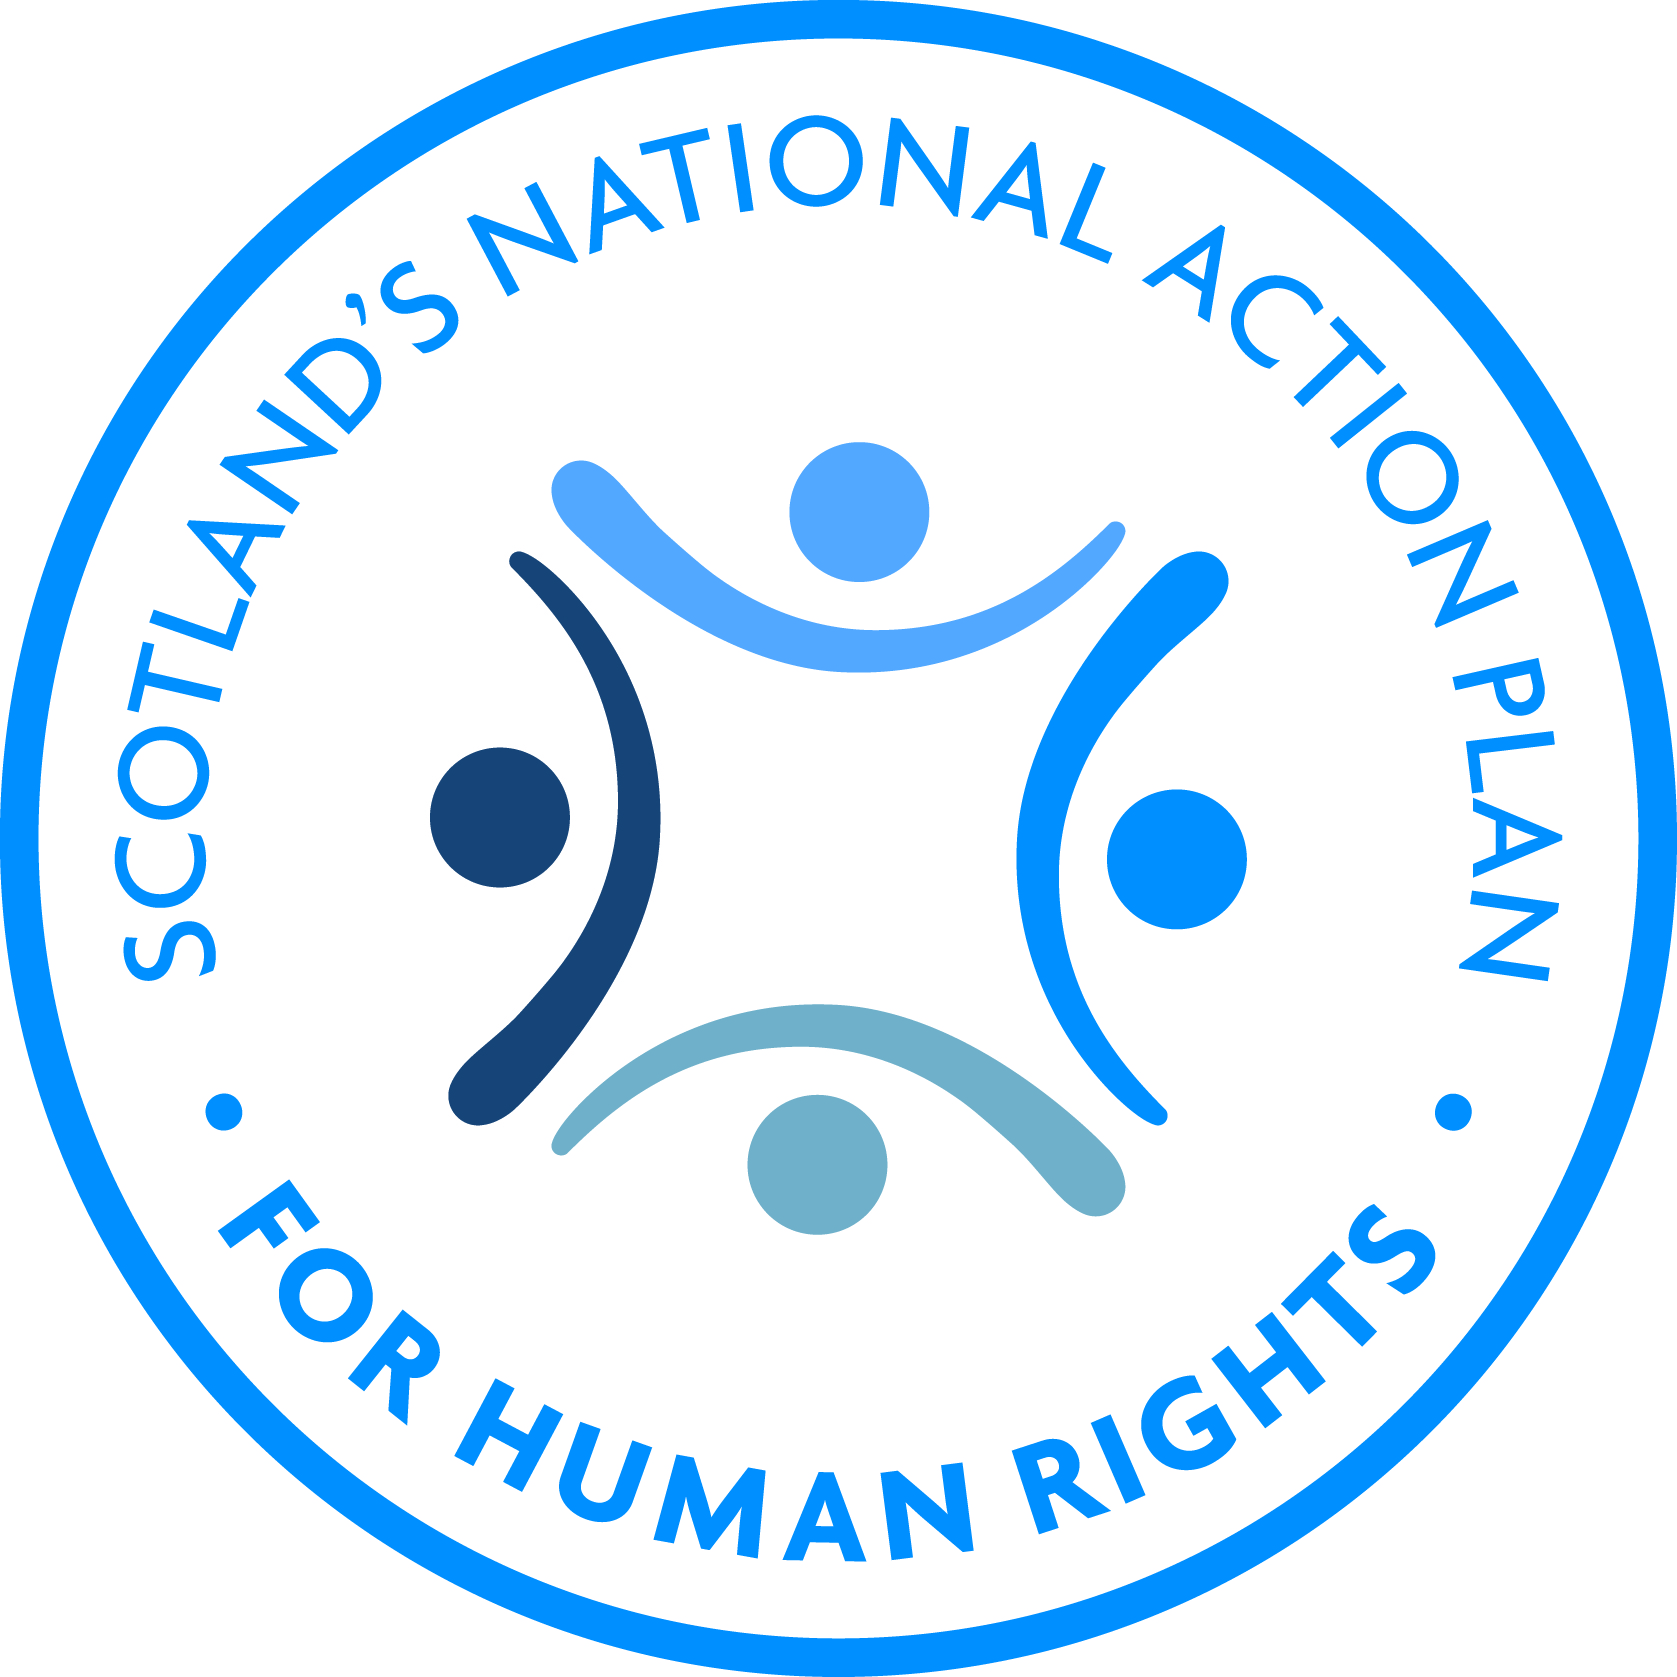 Circular logo with a depiction of four people in the middle, with the text 'Scotland's National Action Plan for Human Rights'